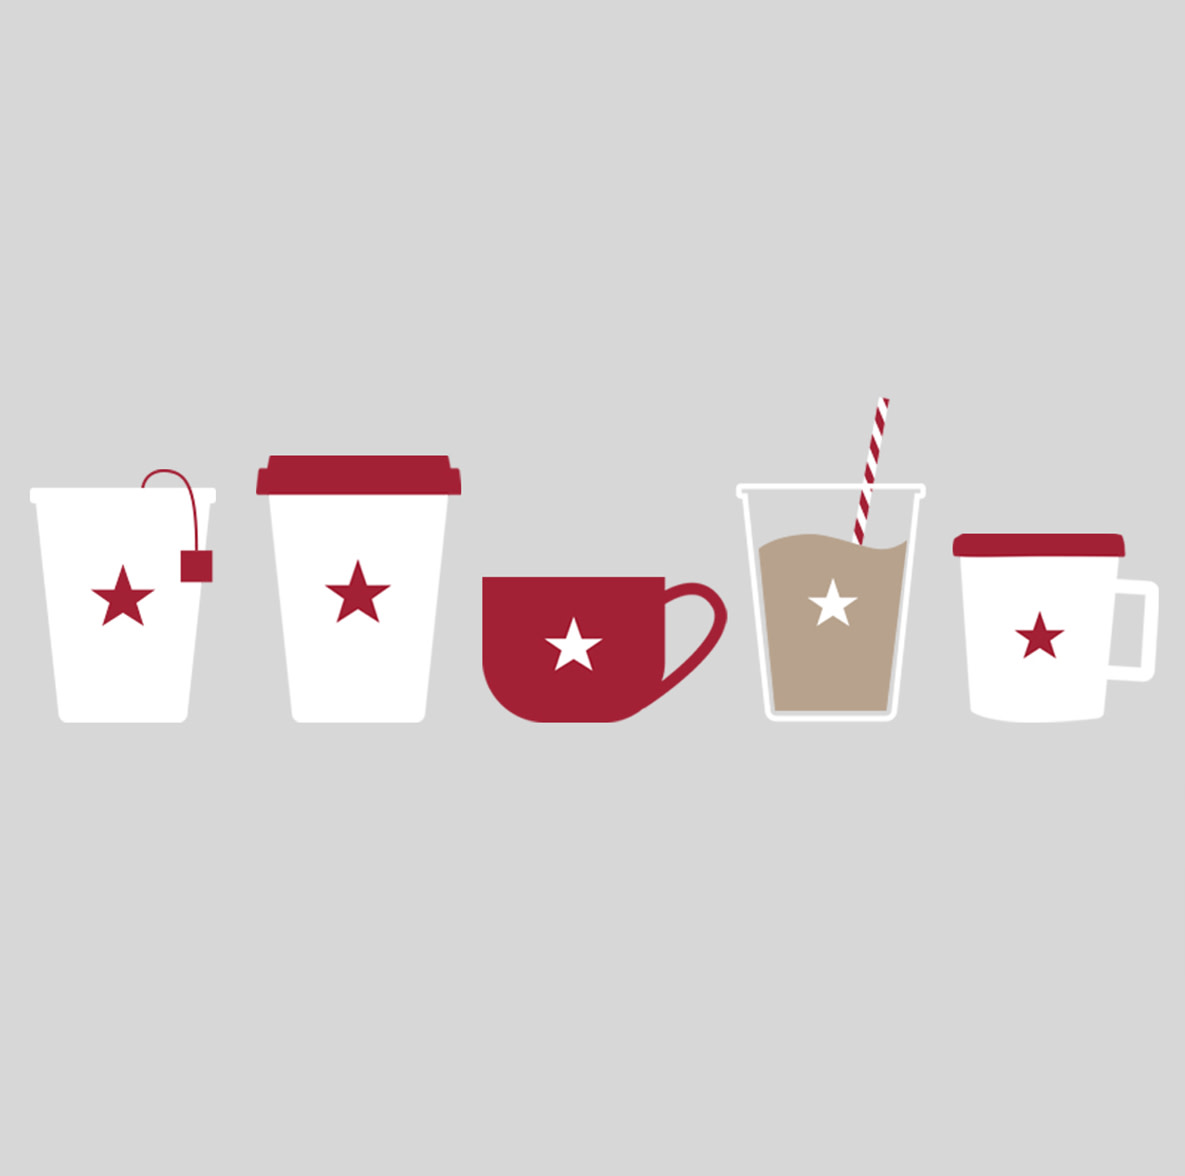 Enjoy 5 Free Drinks When You Download The Pret App